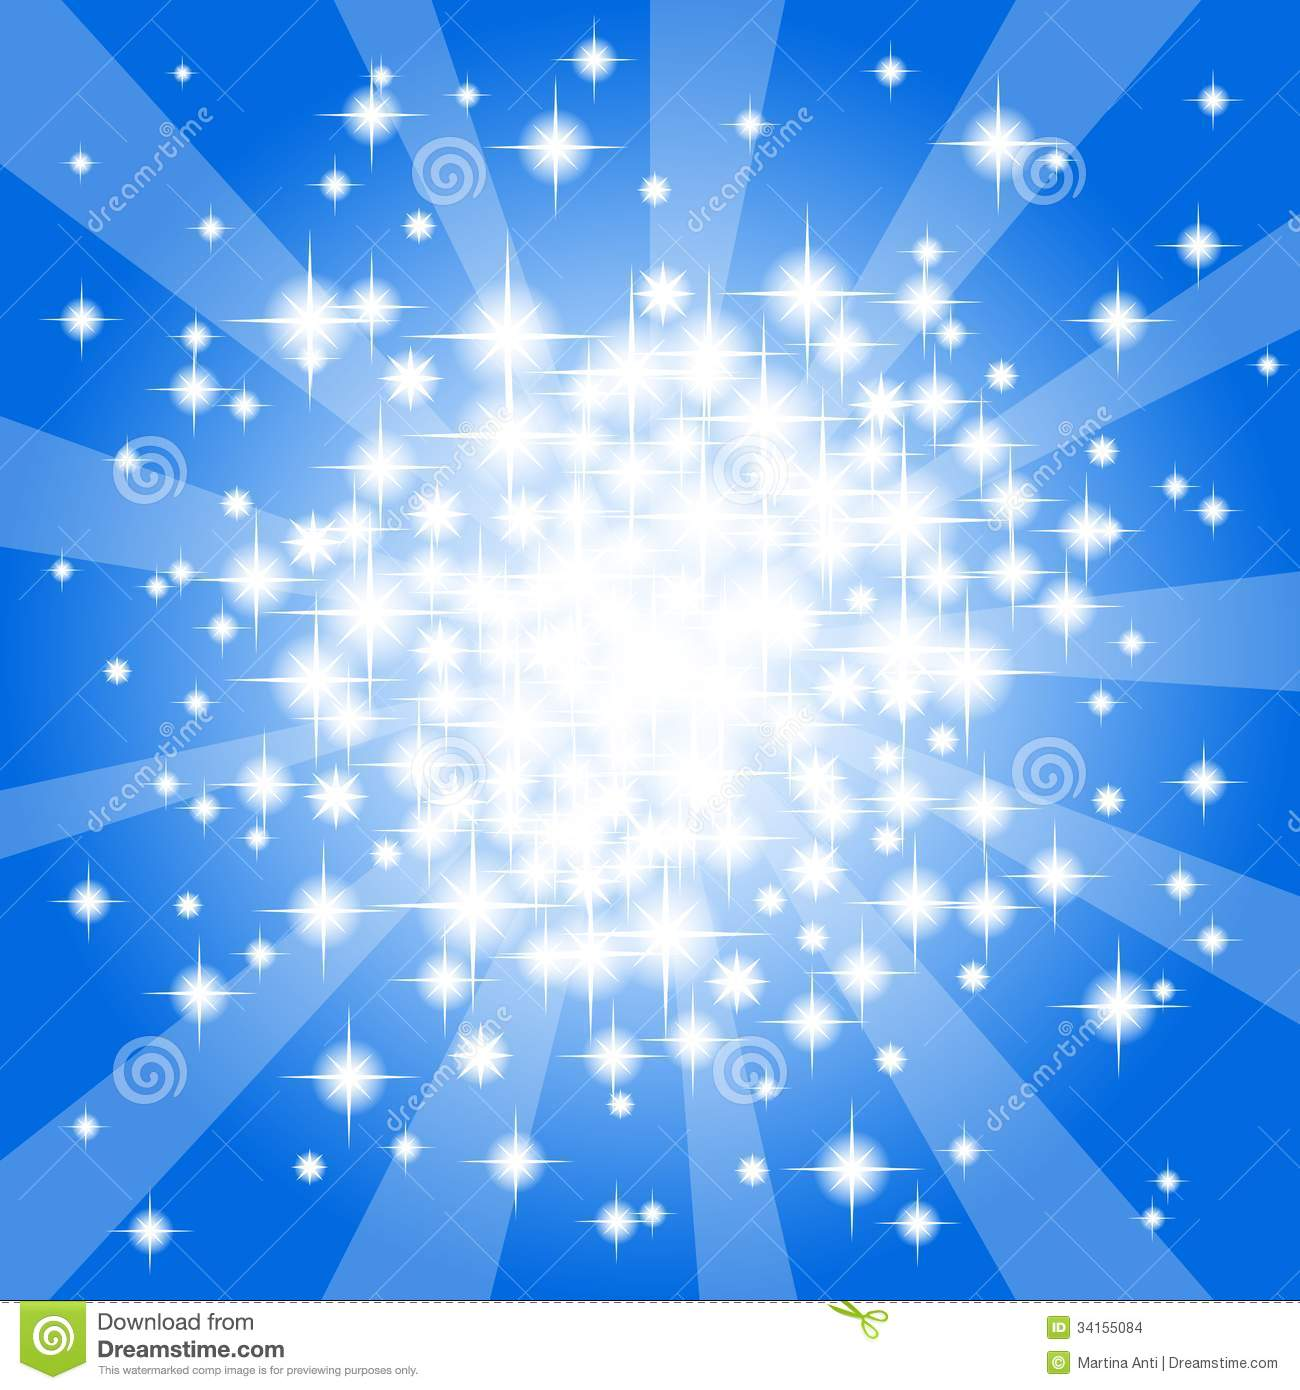 blue star background vector - photo #20